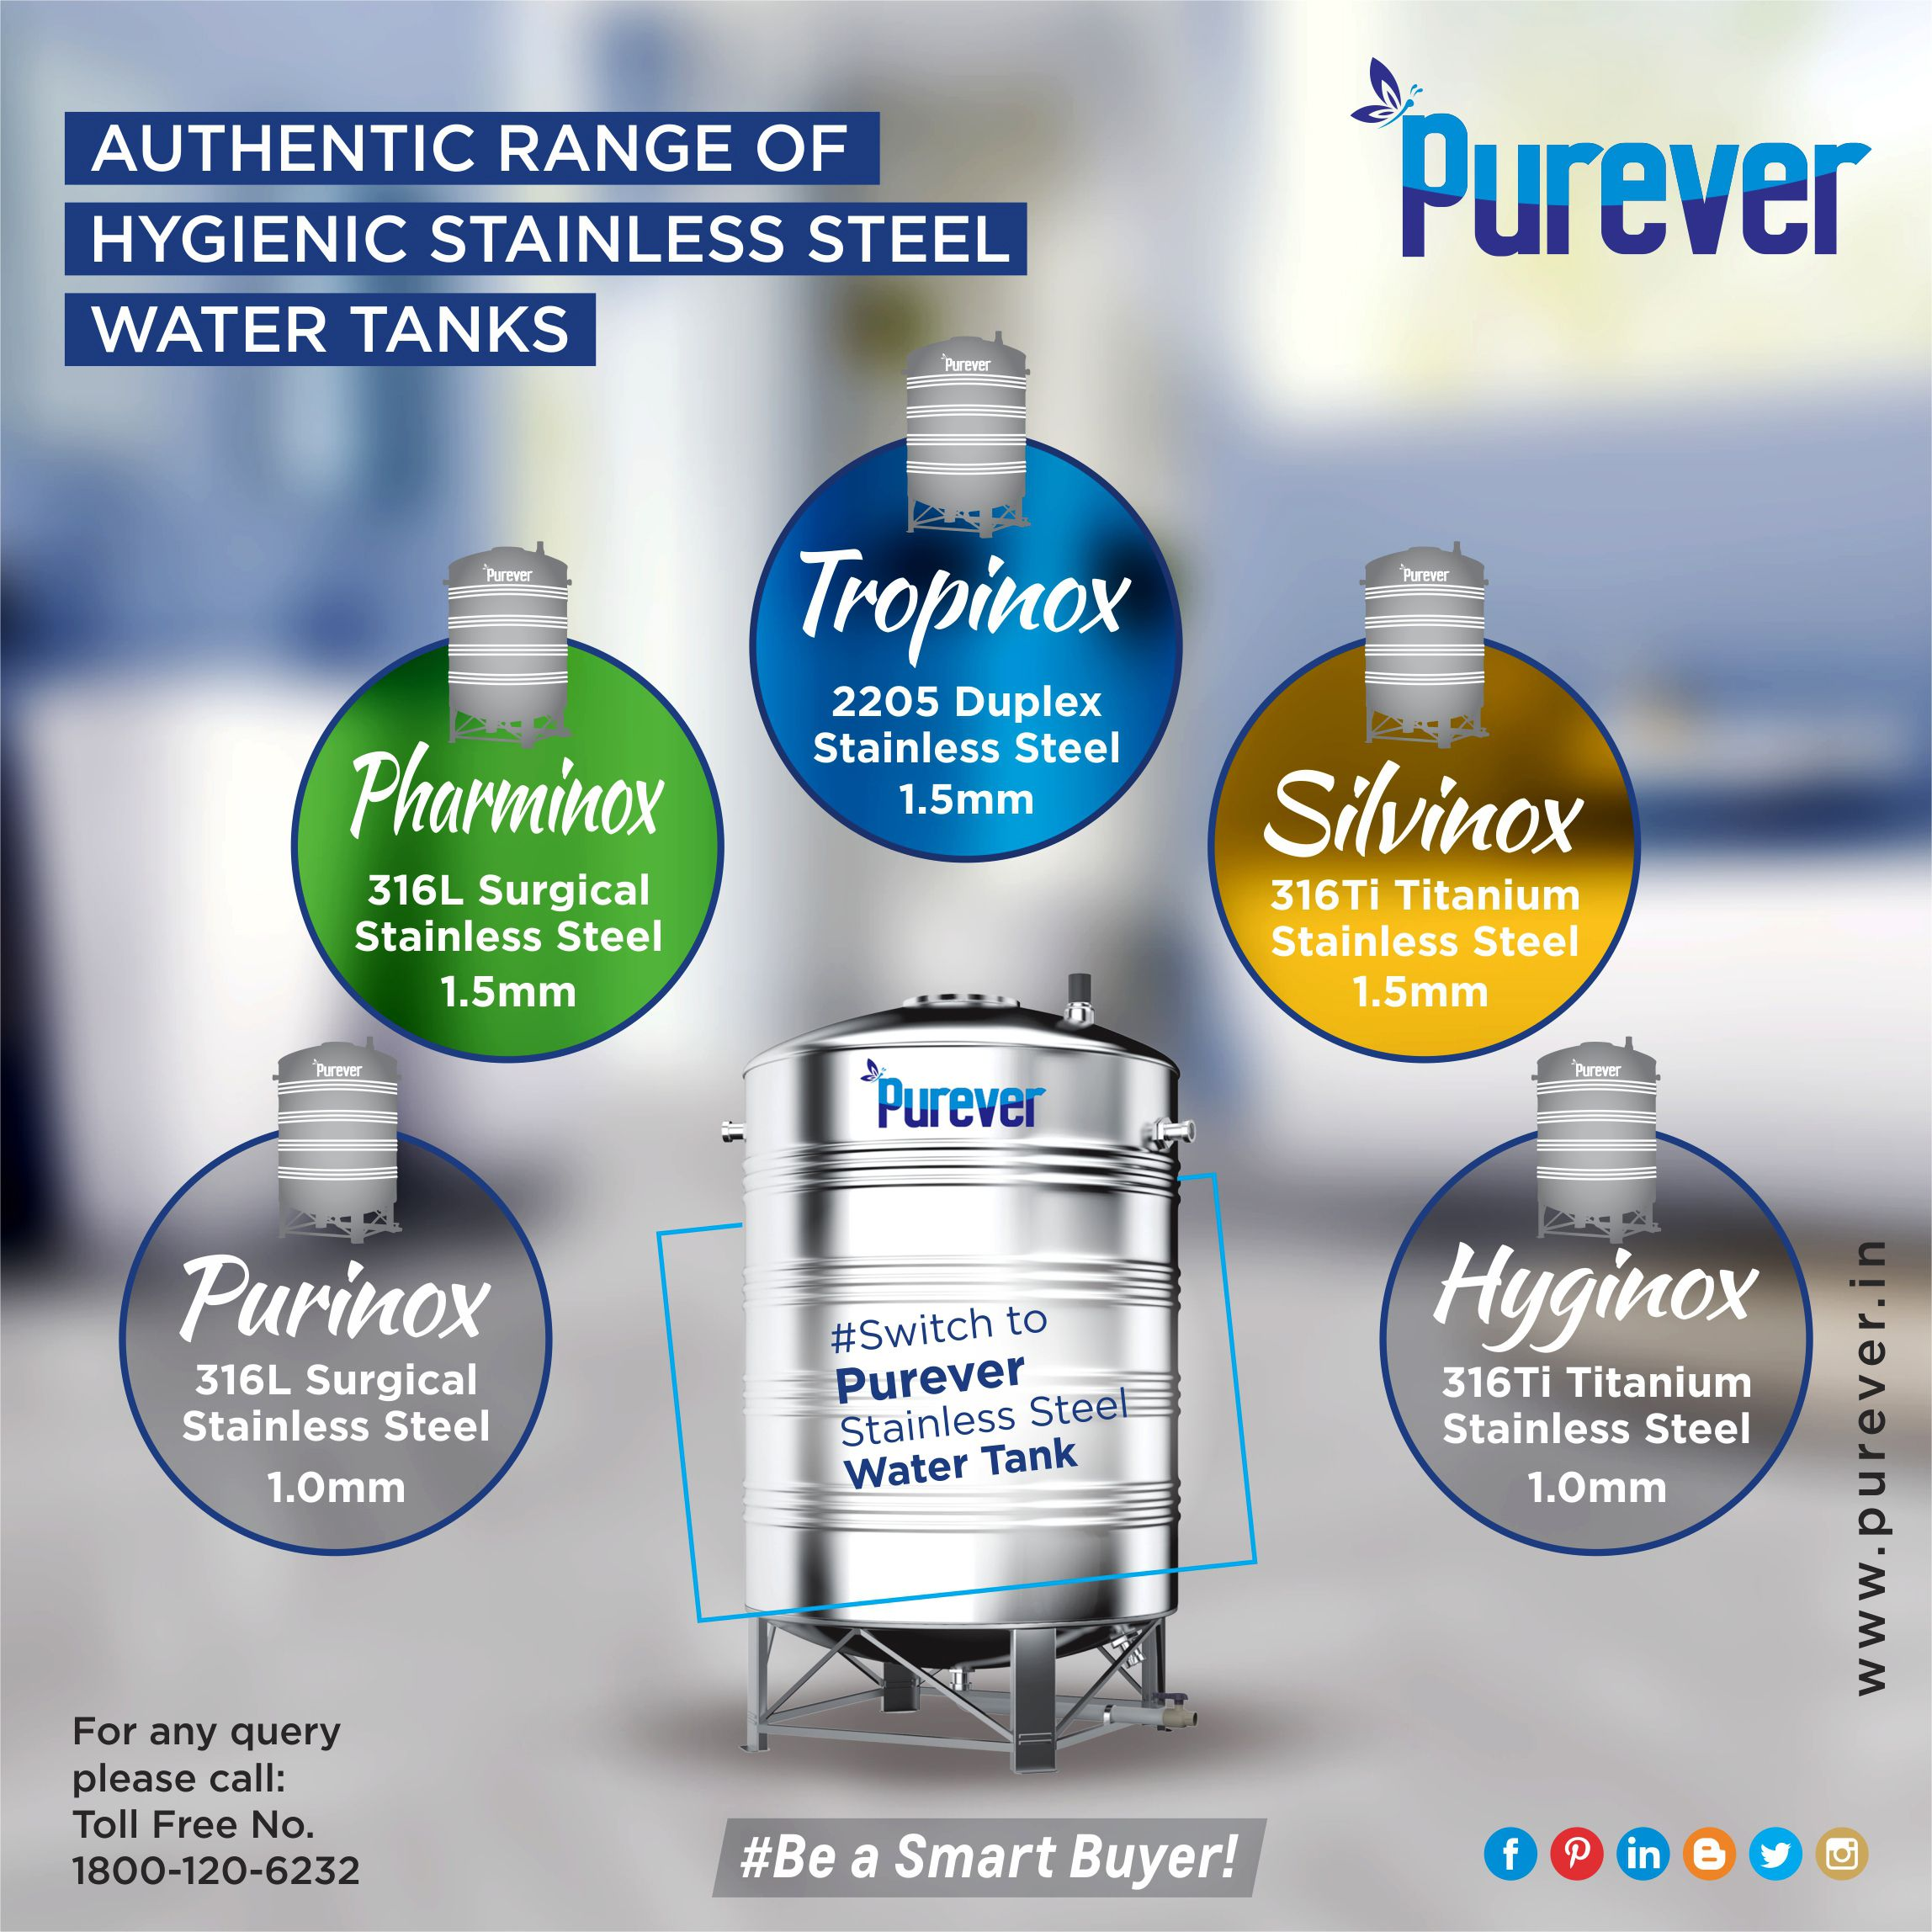 Purever Every Single Water Tank Defines The Words Purity Safety Durability 1800 120 6232 Purever Stainlesssteel Steel Water Tanks Water Tank Steel Water